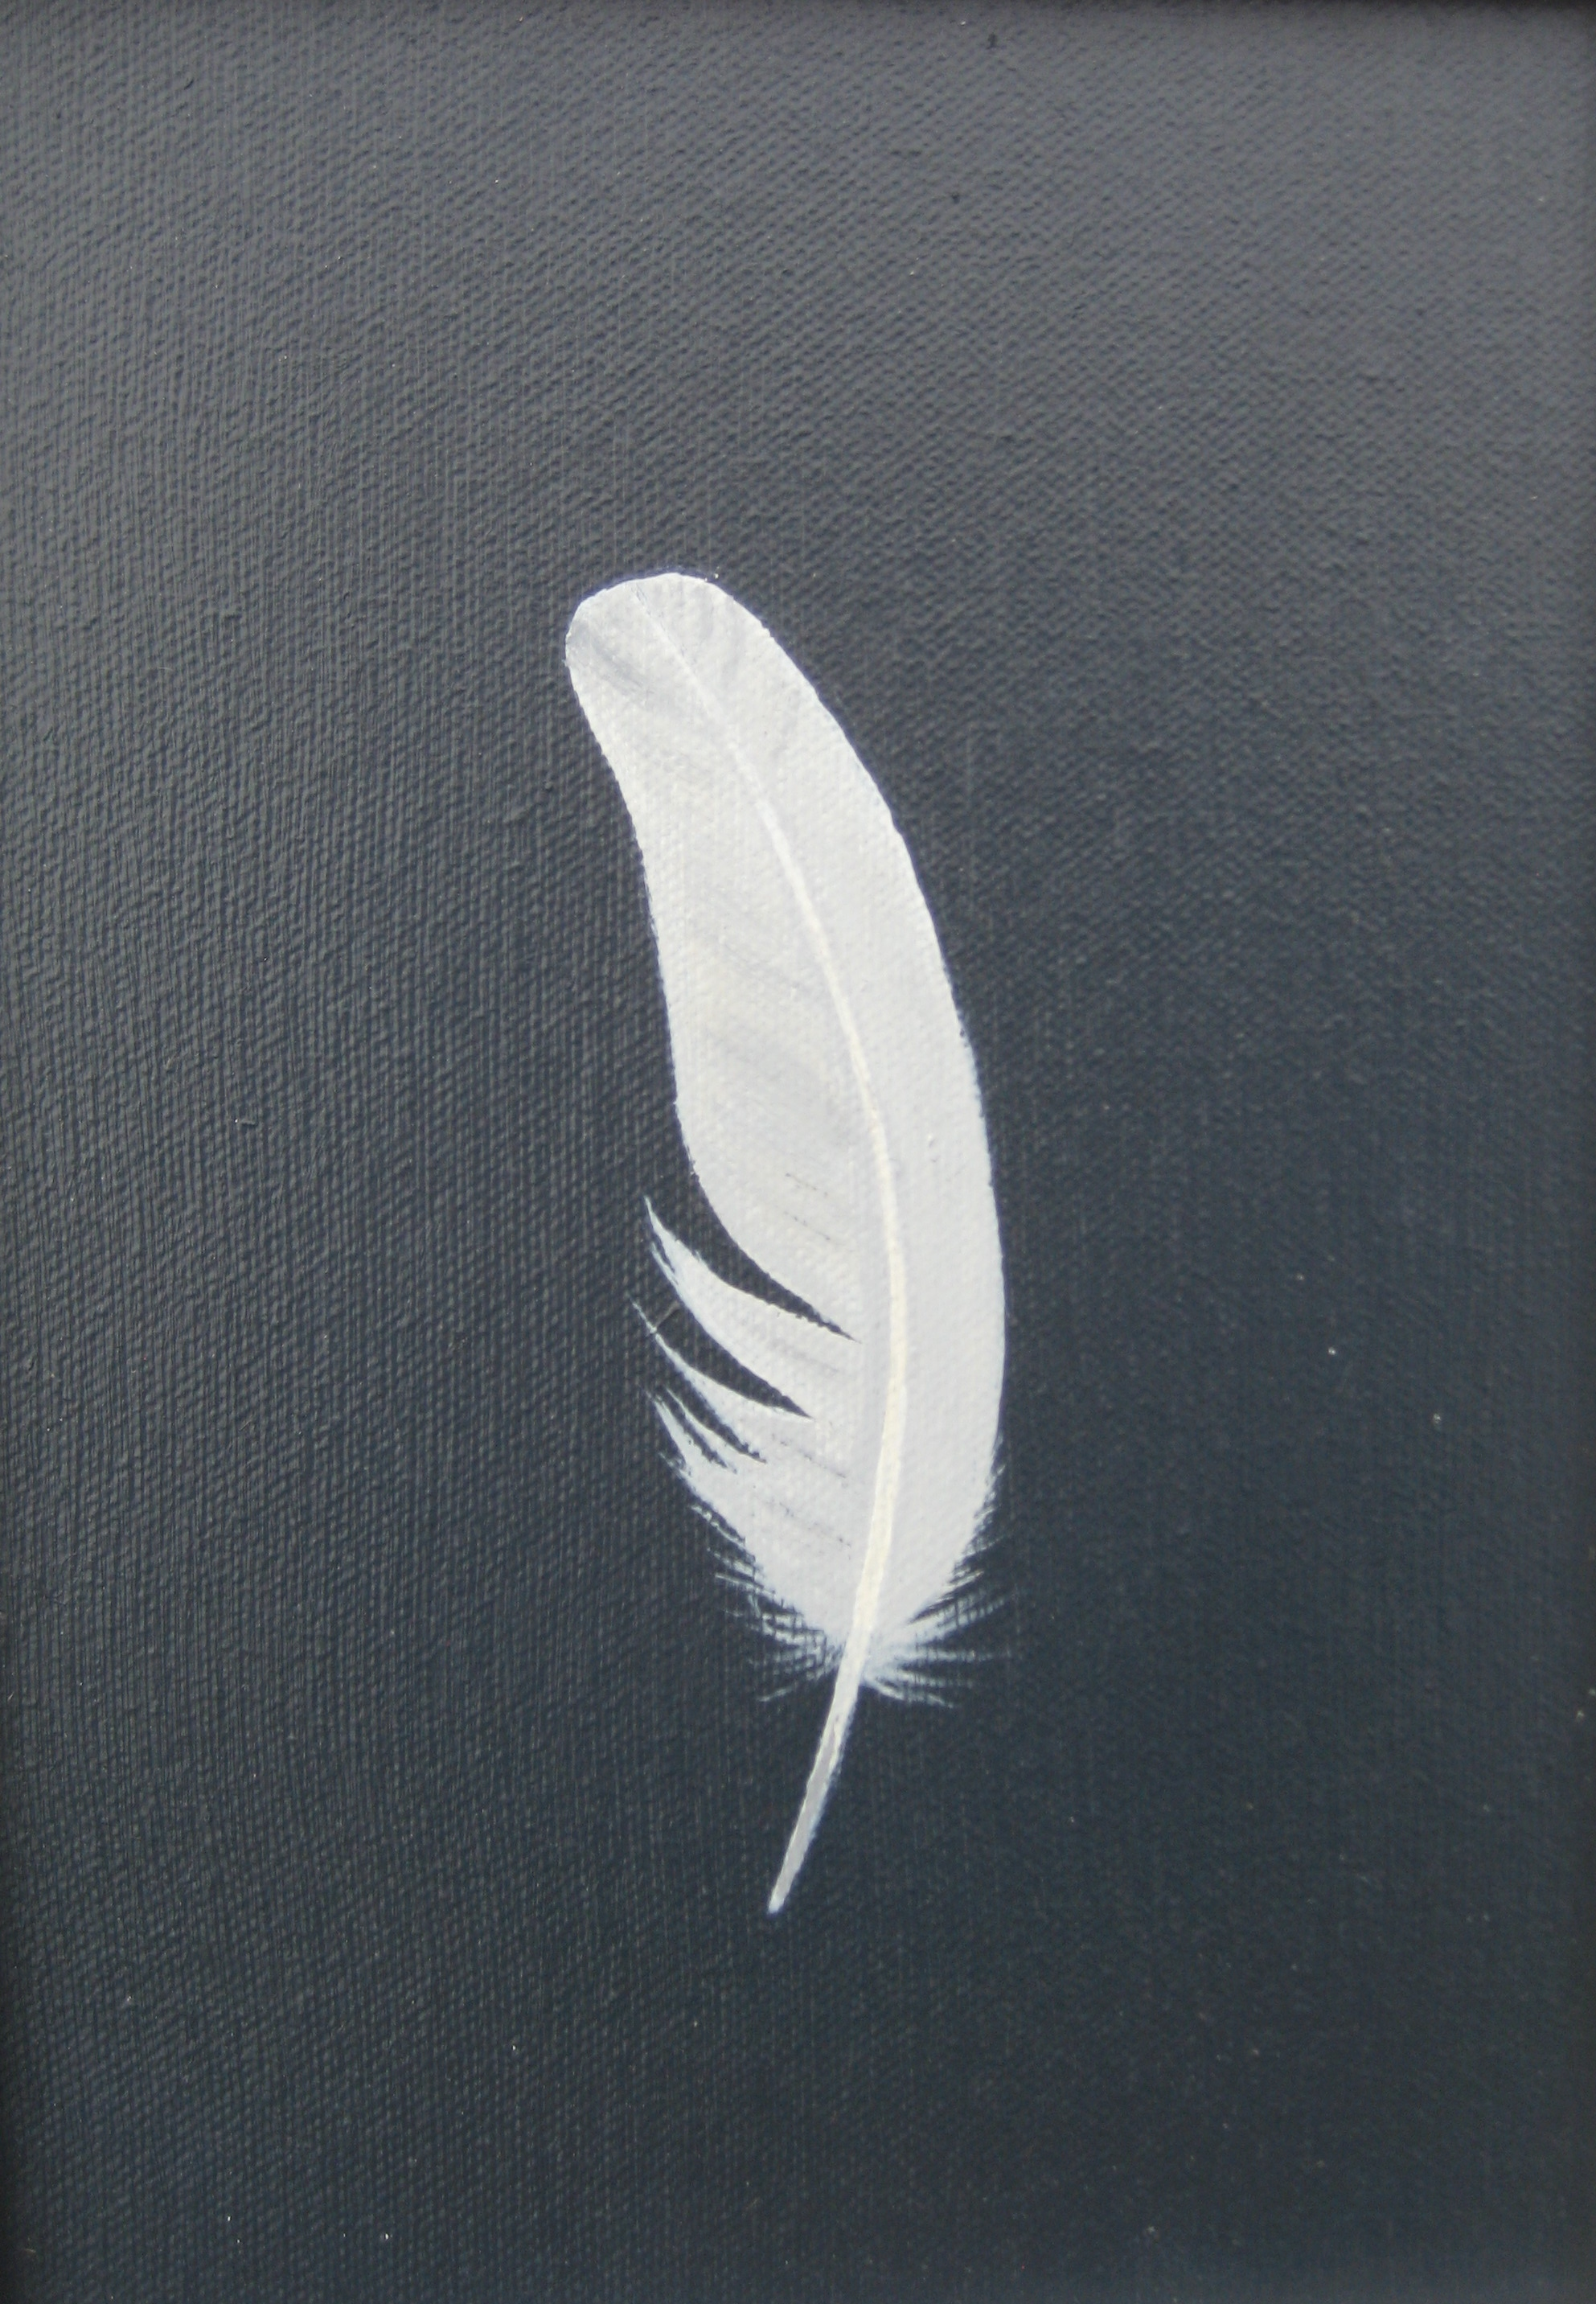 SMALL WHITE FEATHER II